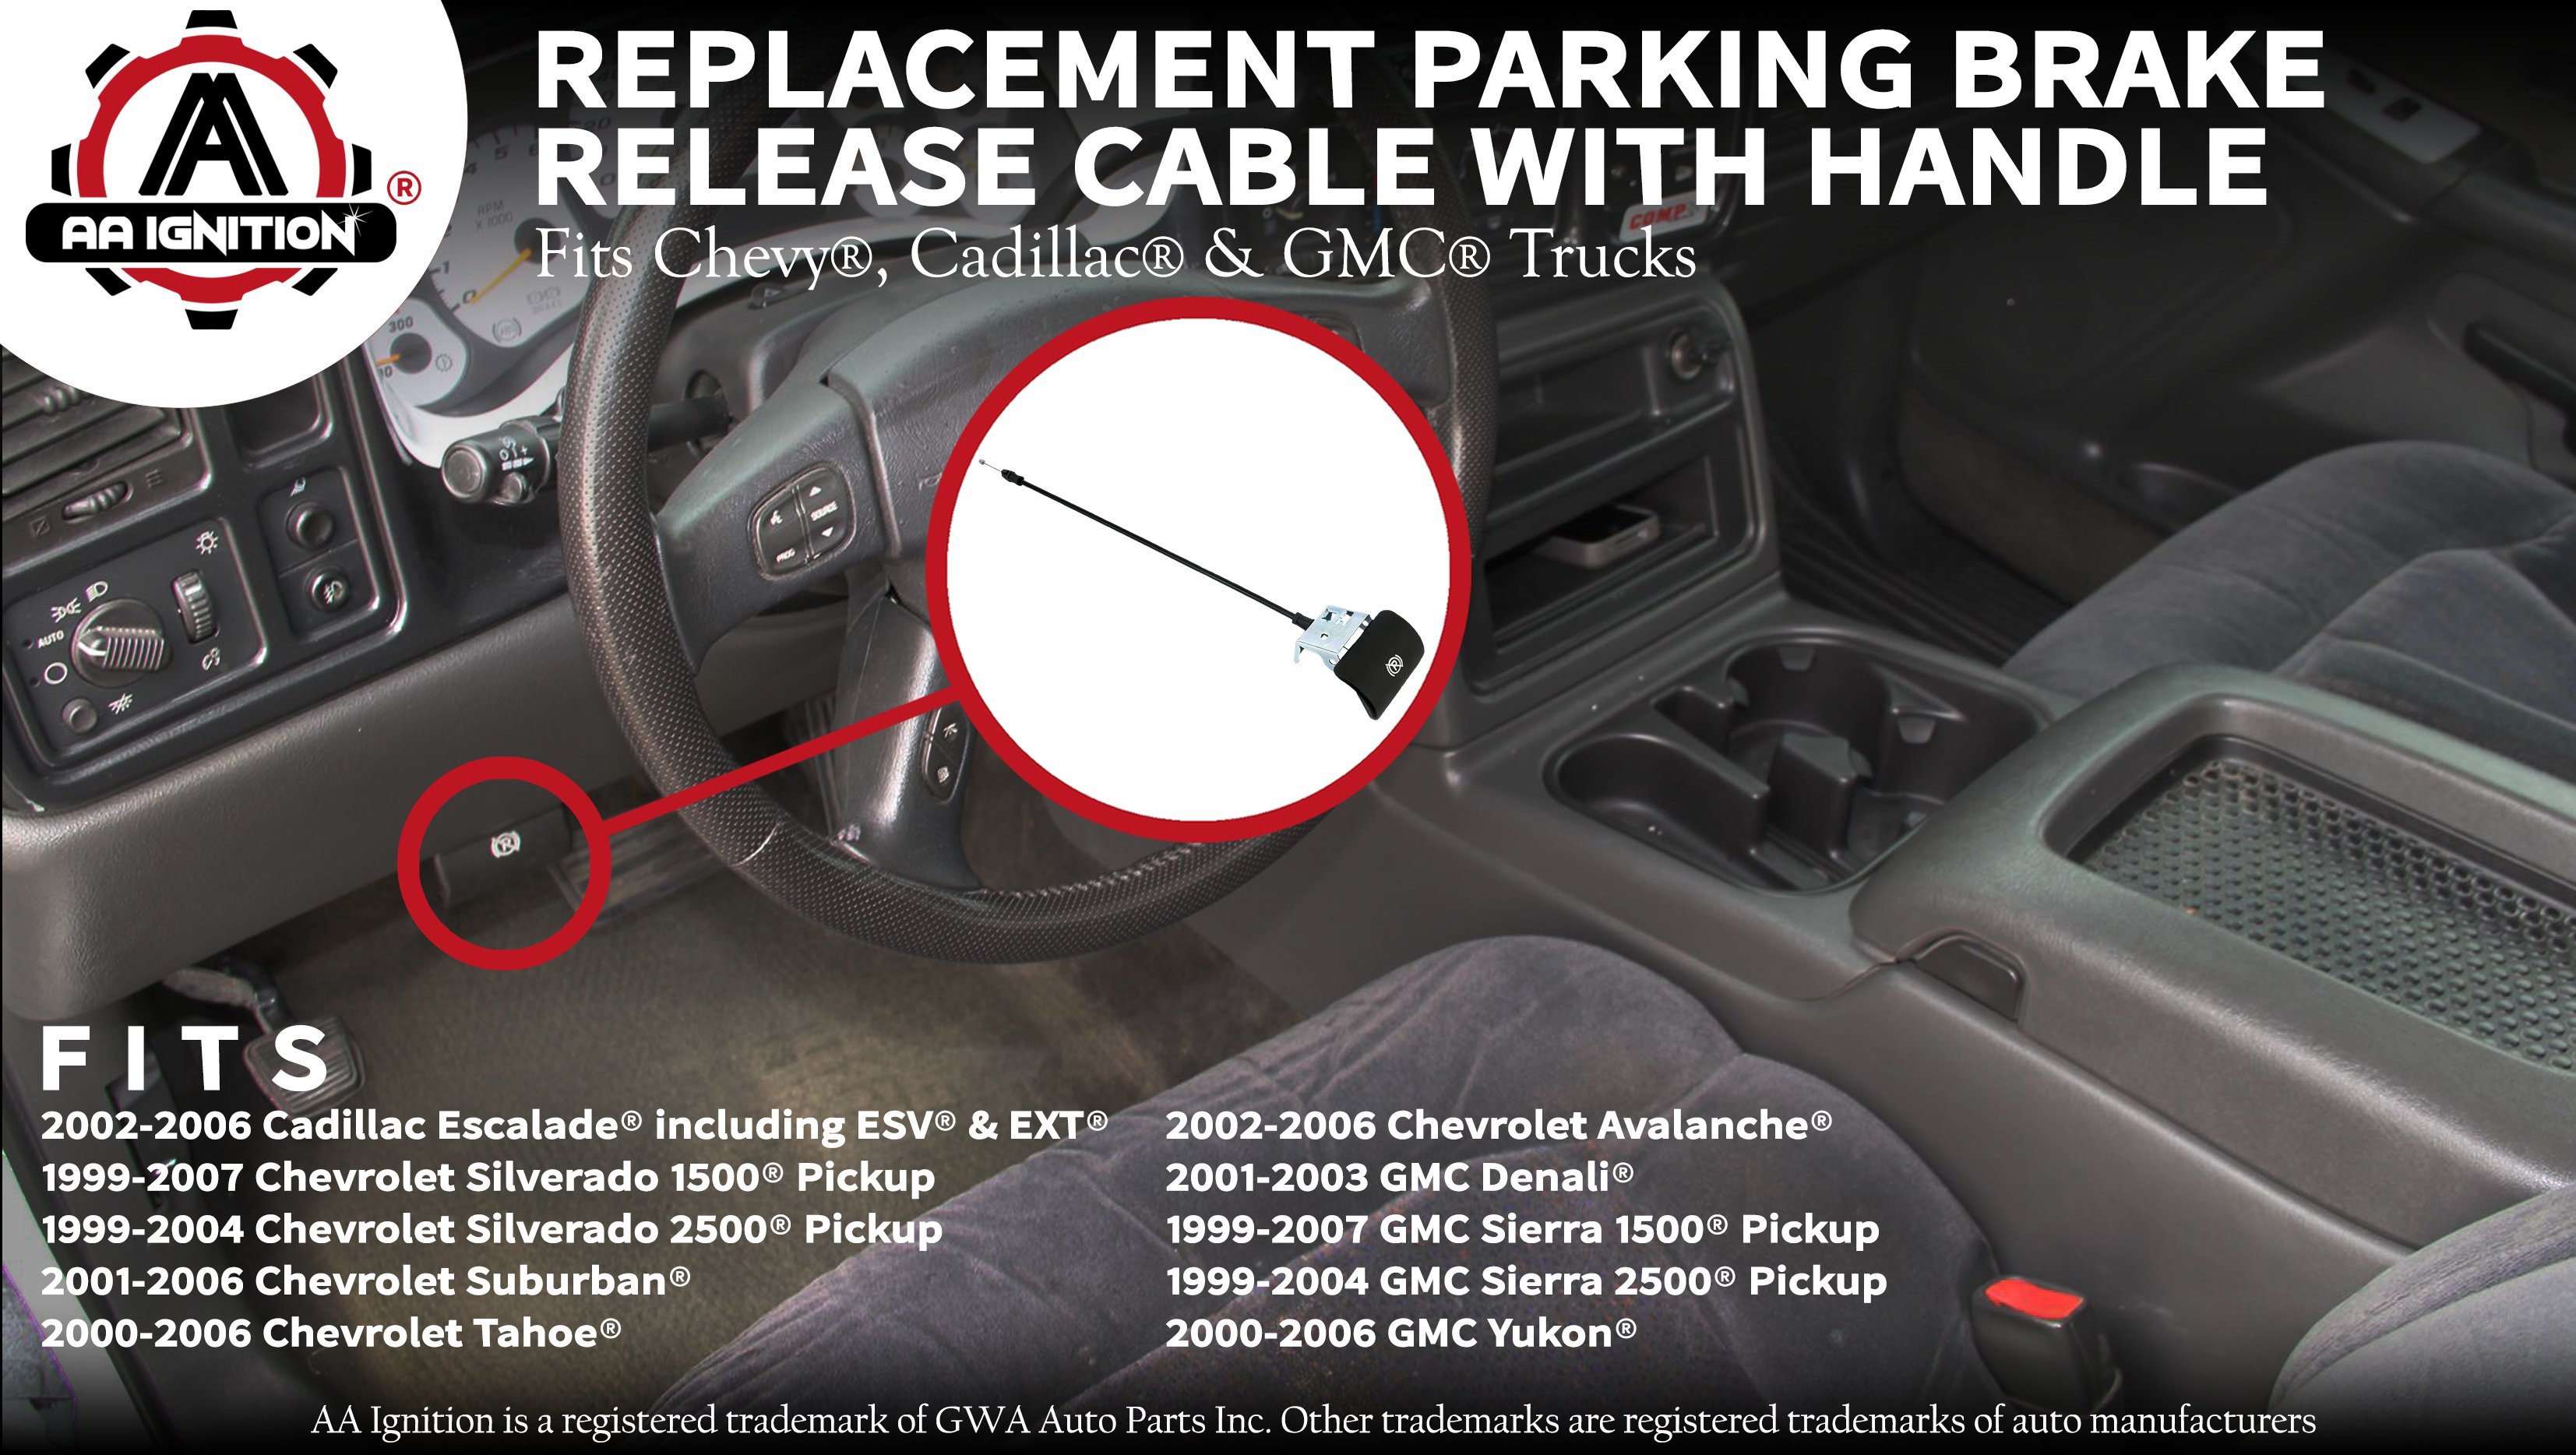 Parking Brake Release Cable With Handle Replaces 15226272 Chevy Silverado Chevrolet Tahoe Suburban Avalanche Gmc Sierra Yukon Denali Parking Brake Cable For Emergency Hand Brake Walmart Com Walmart Com